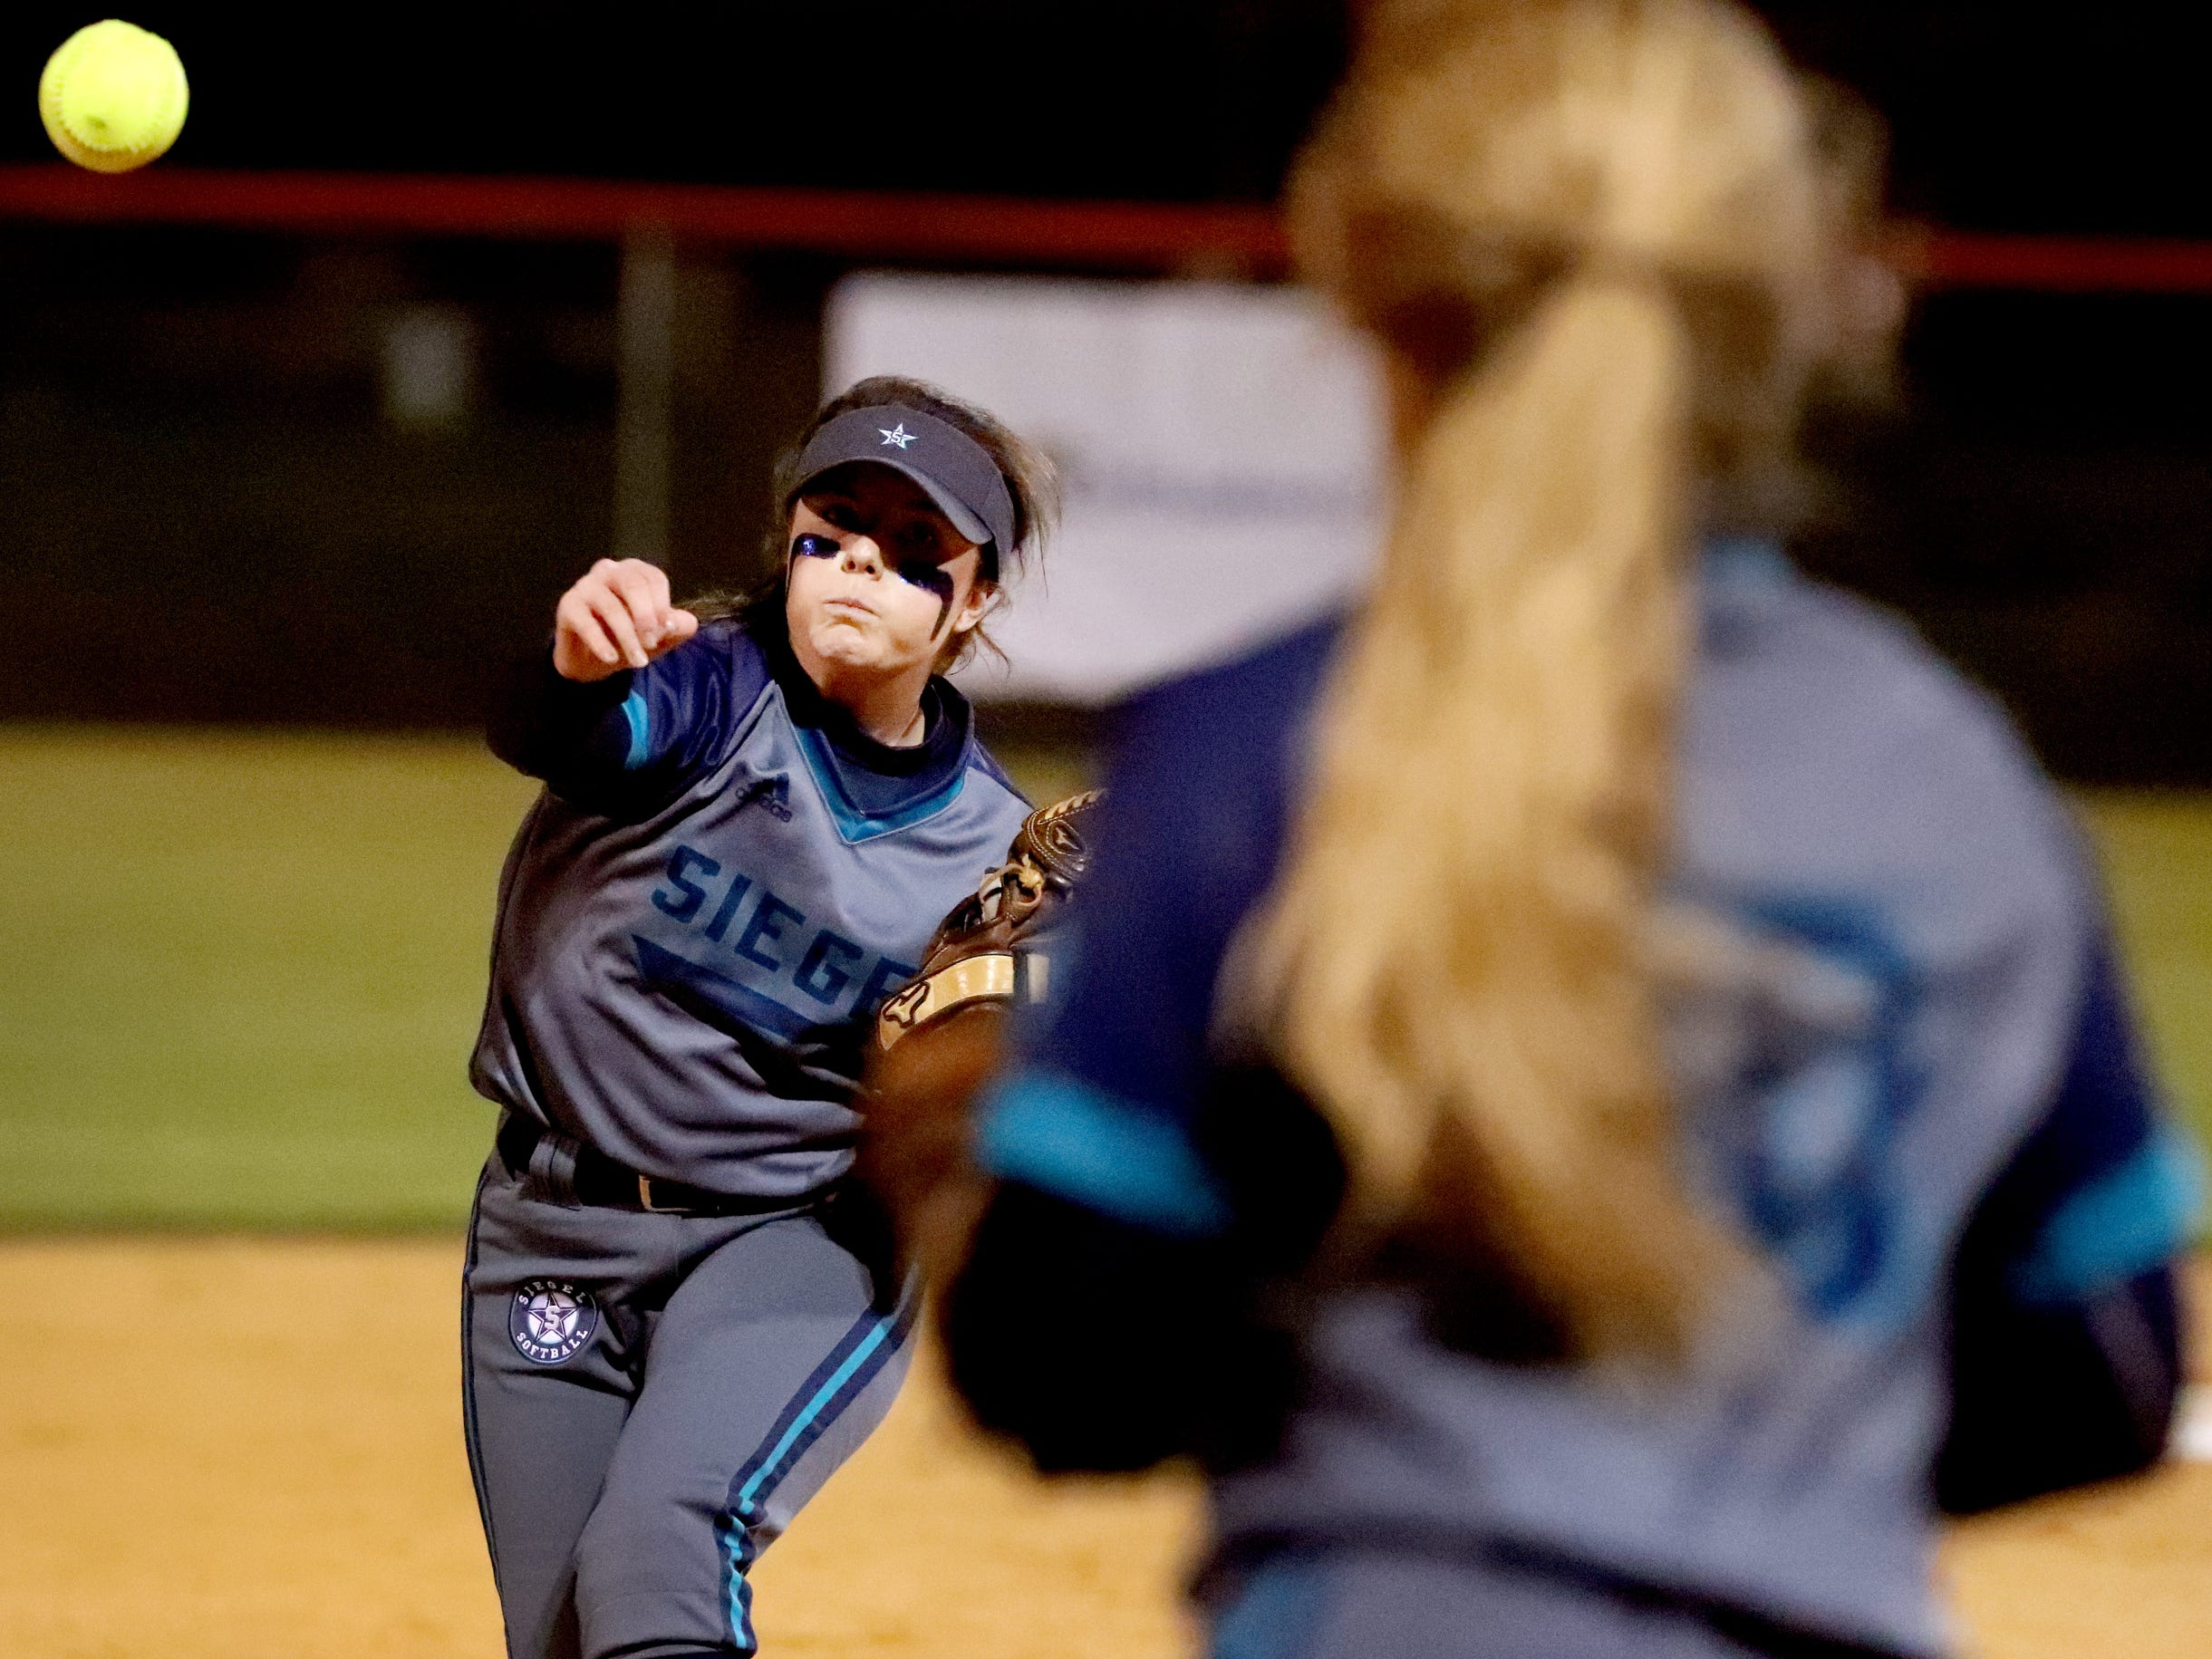 Siegel's Vanessa Westfall (3) tosses the ball to third baseman Siegel's Caitlyn McCrary (10) to try and get Blackman's Alissa Hart (22) out, on Monday, March 18, 2019, at Blackman.